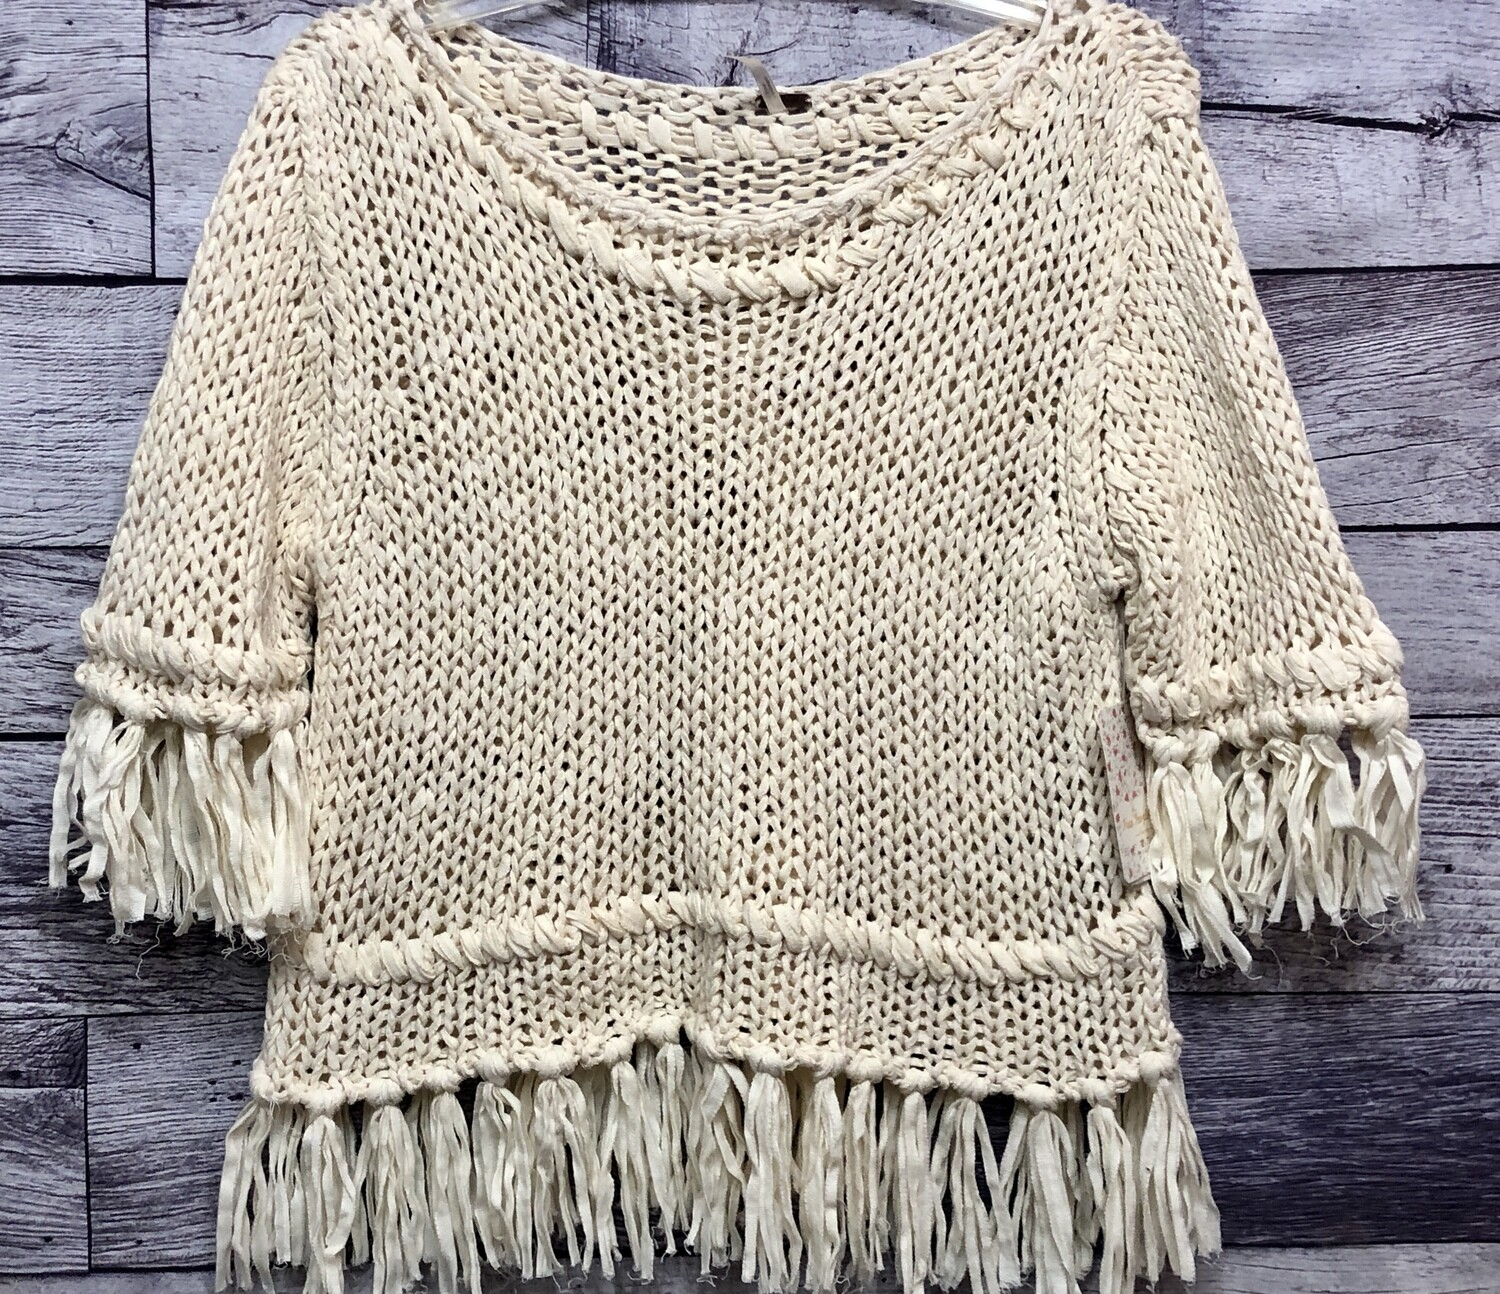 New FREE PEOPLE Woven Fringe Cotton Knit Sweater size large $108